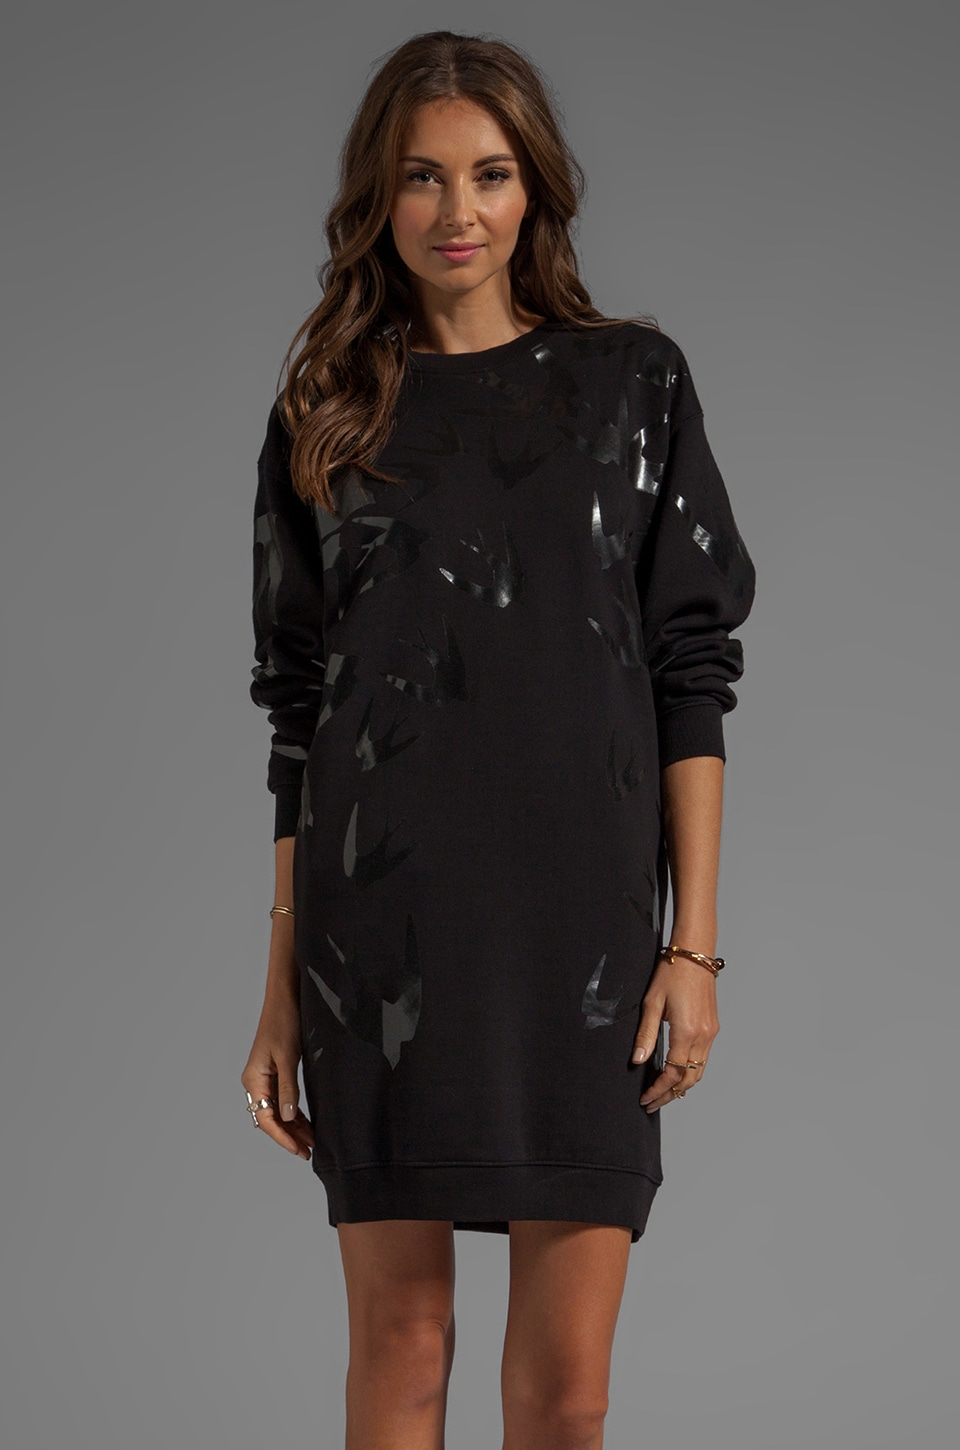 McQ Alexander McQueen Sweatshirt Swallow Dress in Black